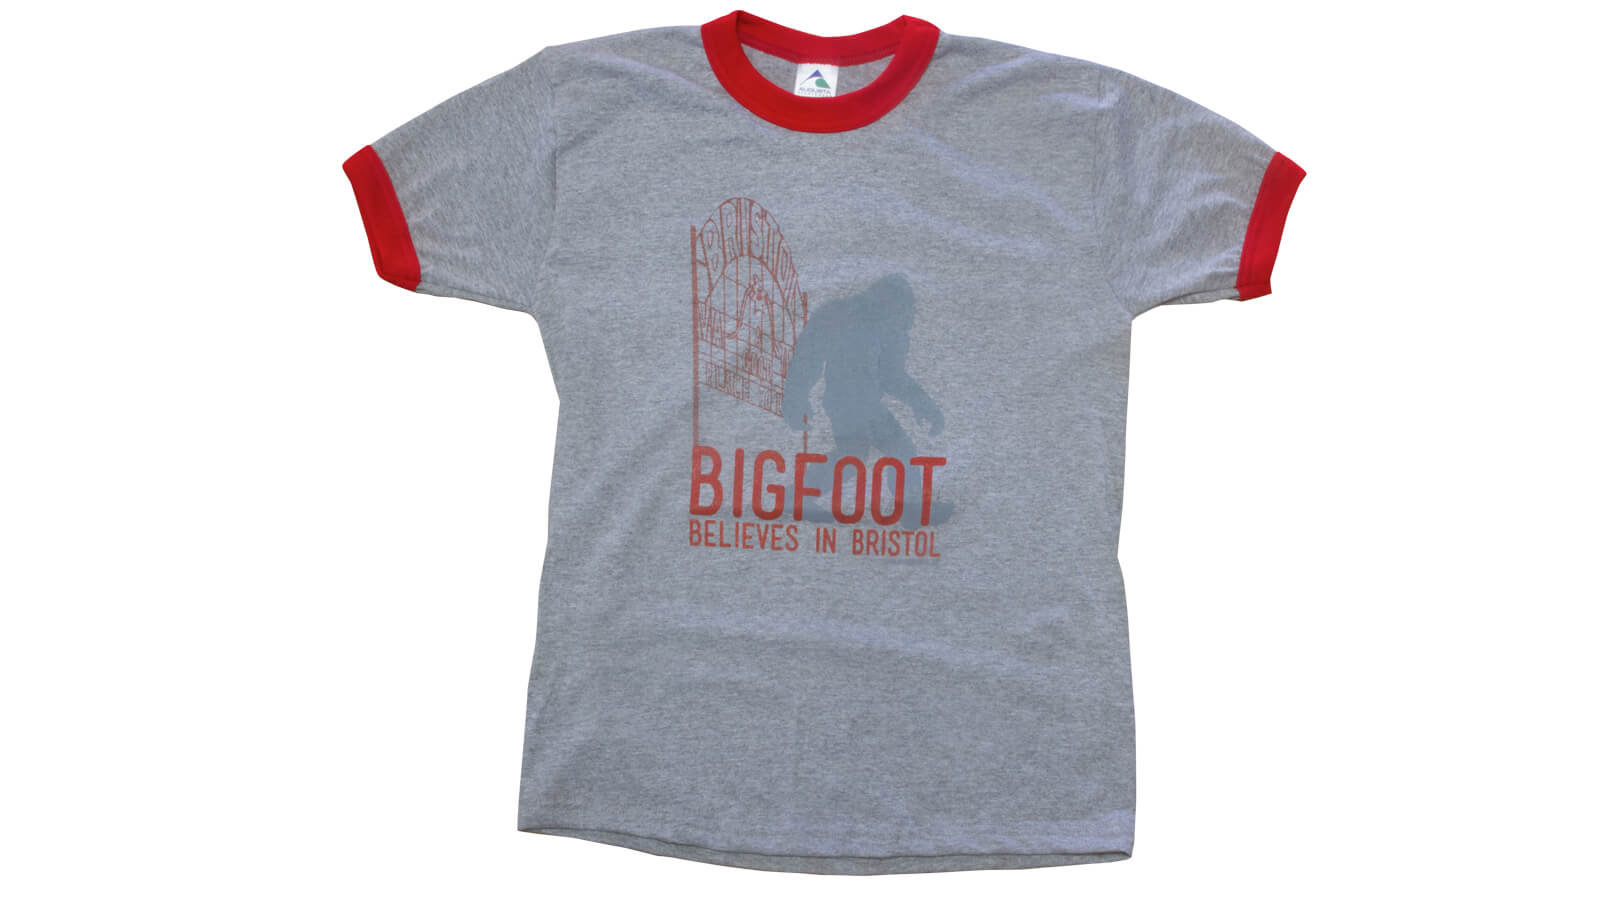 Bigfoot T-shirt (Grey/Red)